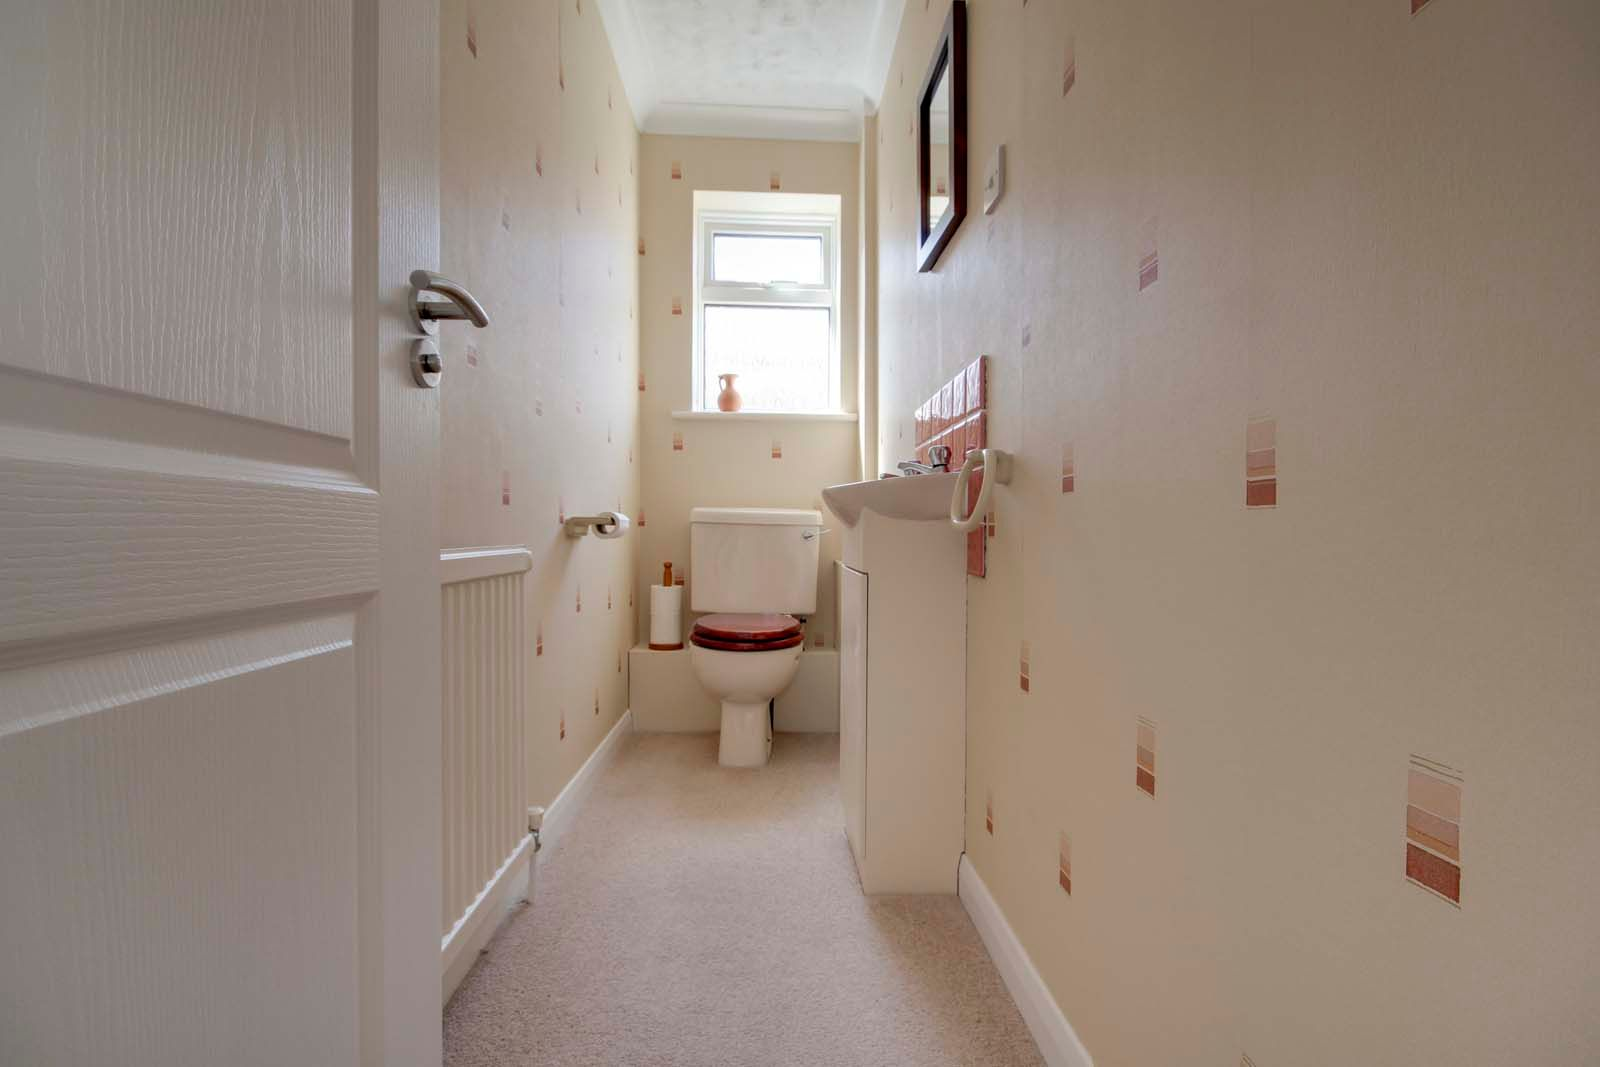 4 bed house for sale in Meadow Park COMP July 2019  - Property Image 12